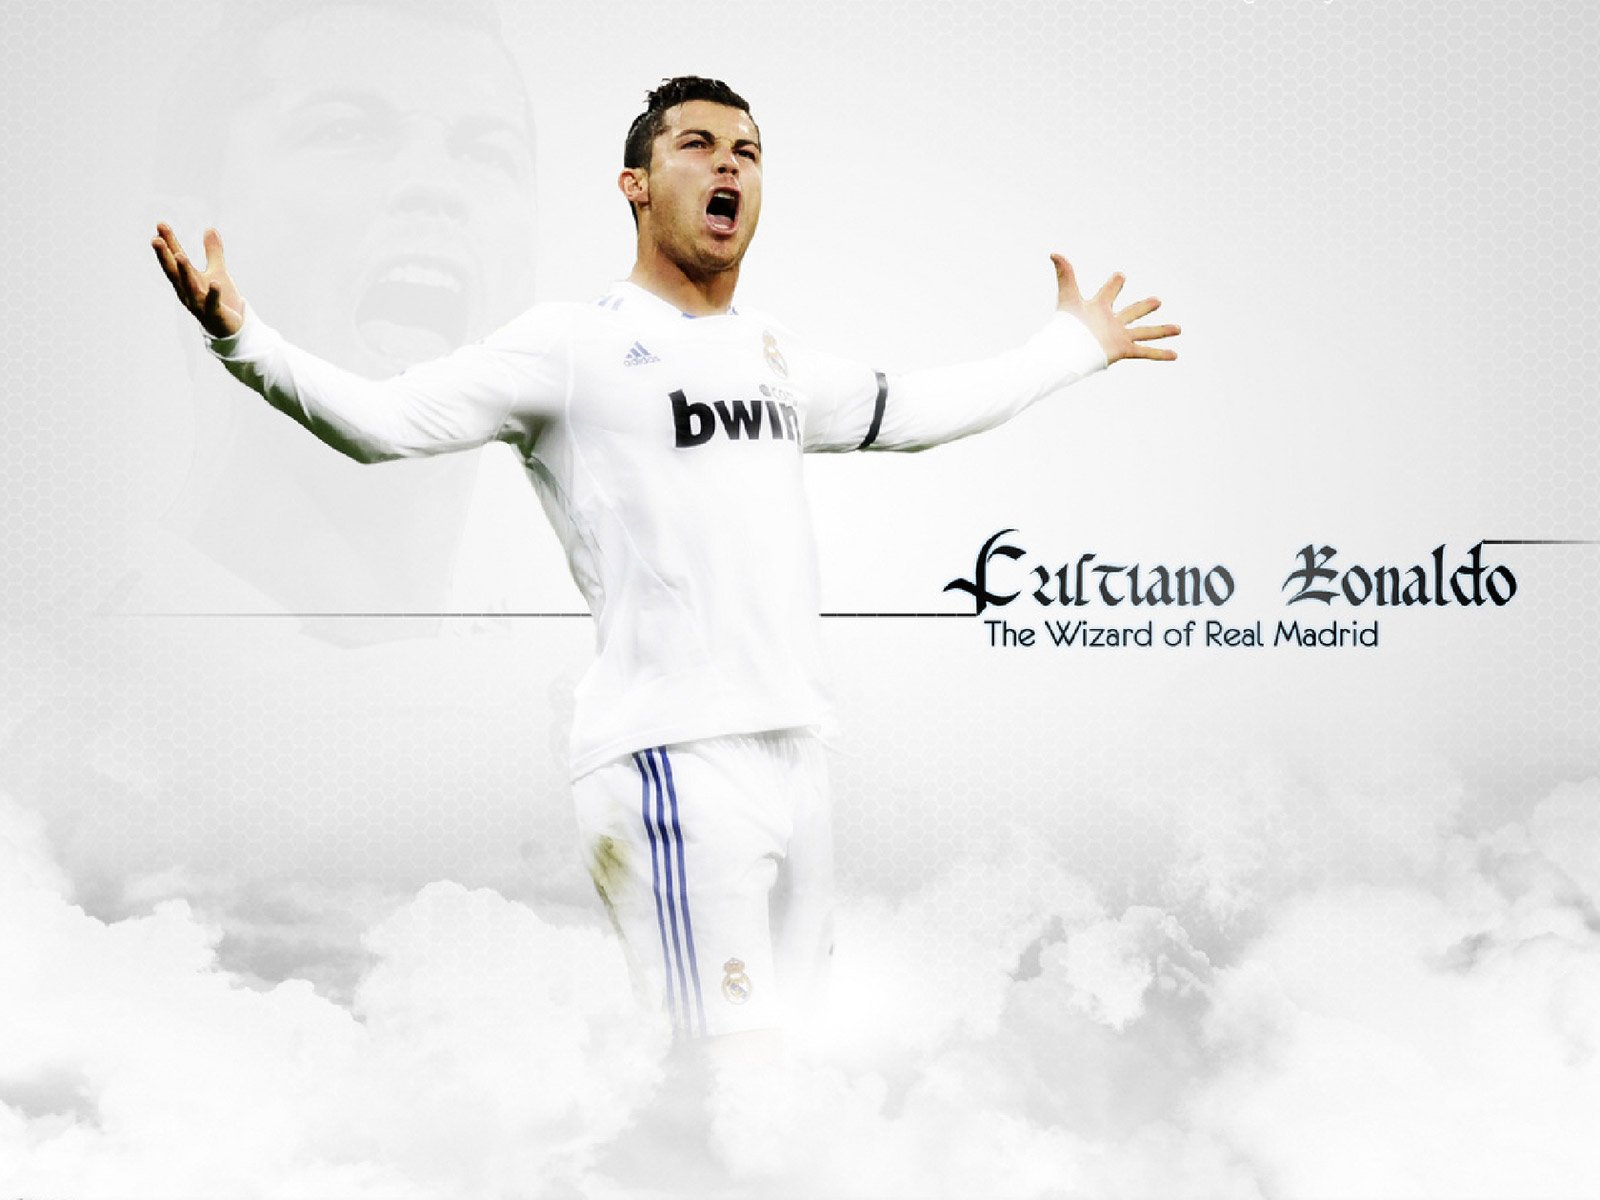 ronaldo Wallpapers 2015 HD | Top Collections of Pictures, Images ...